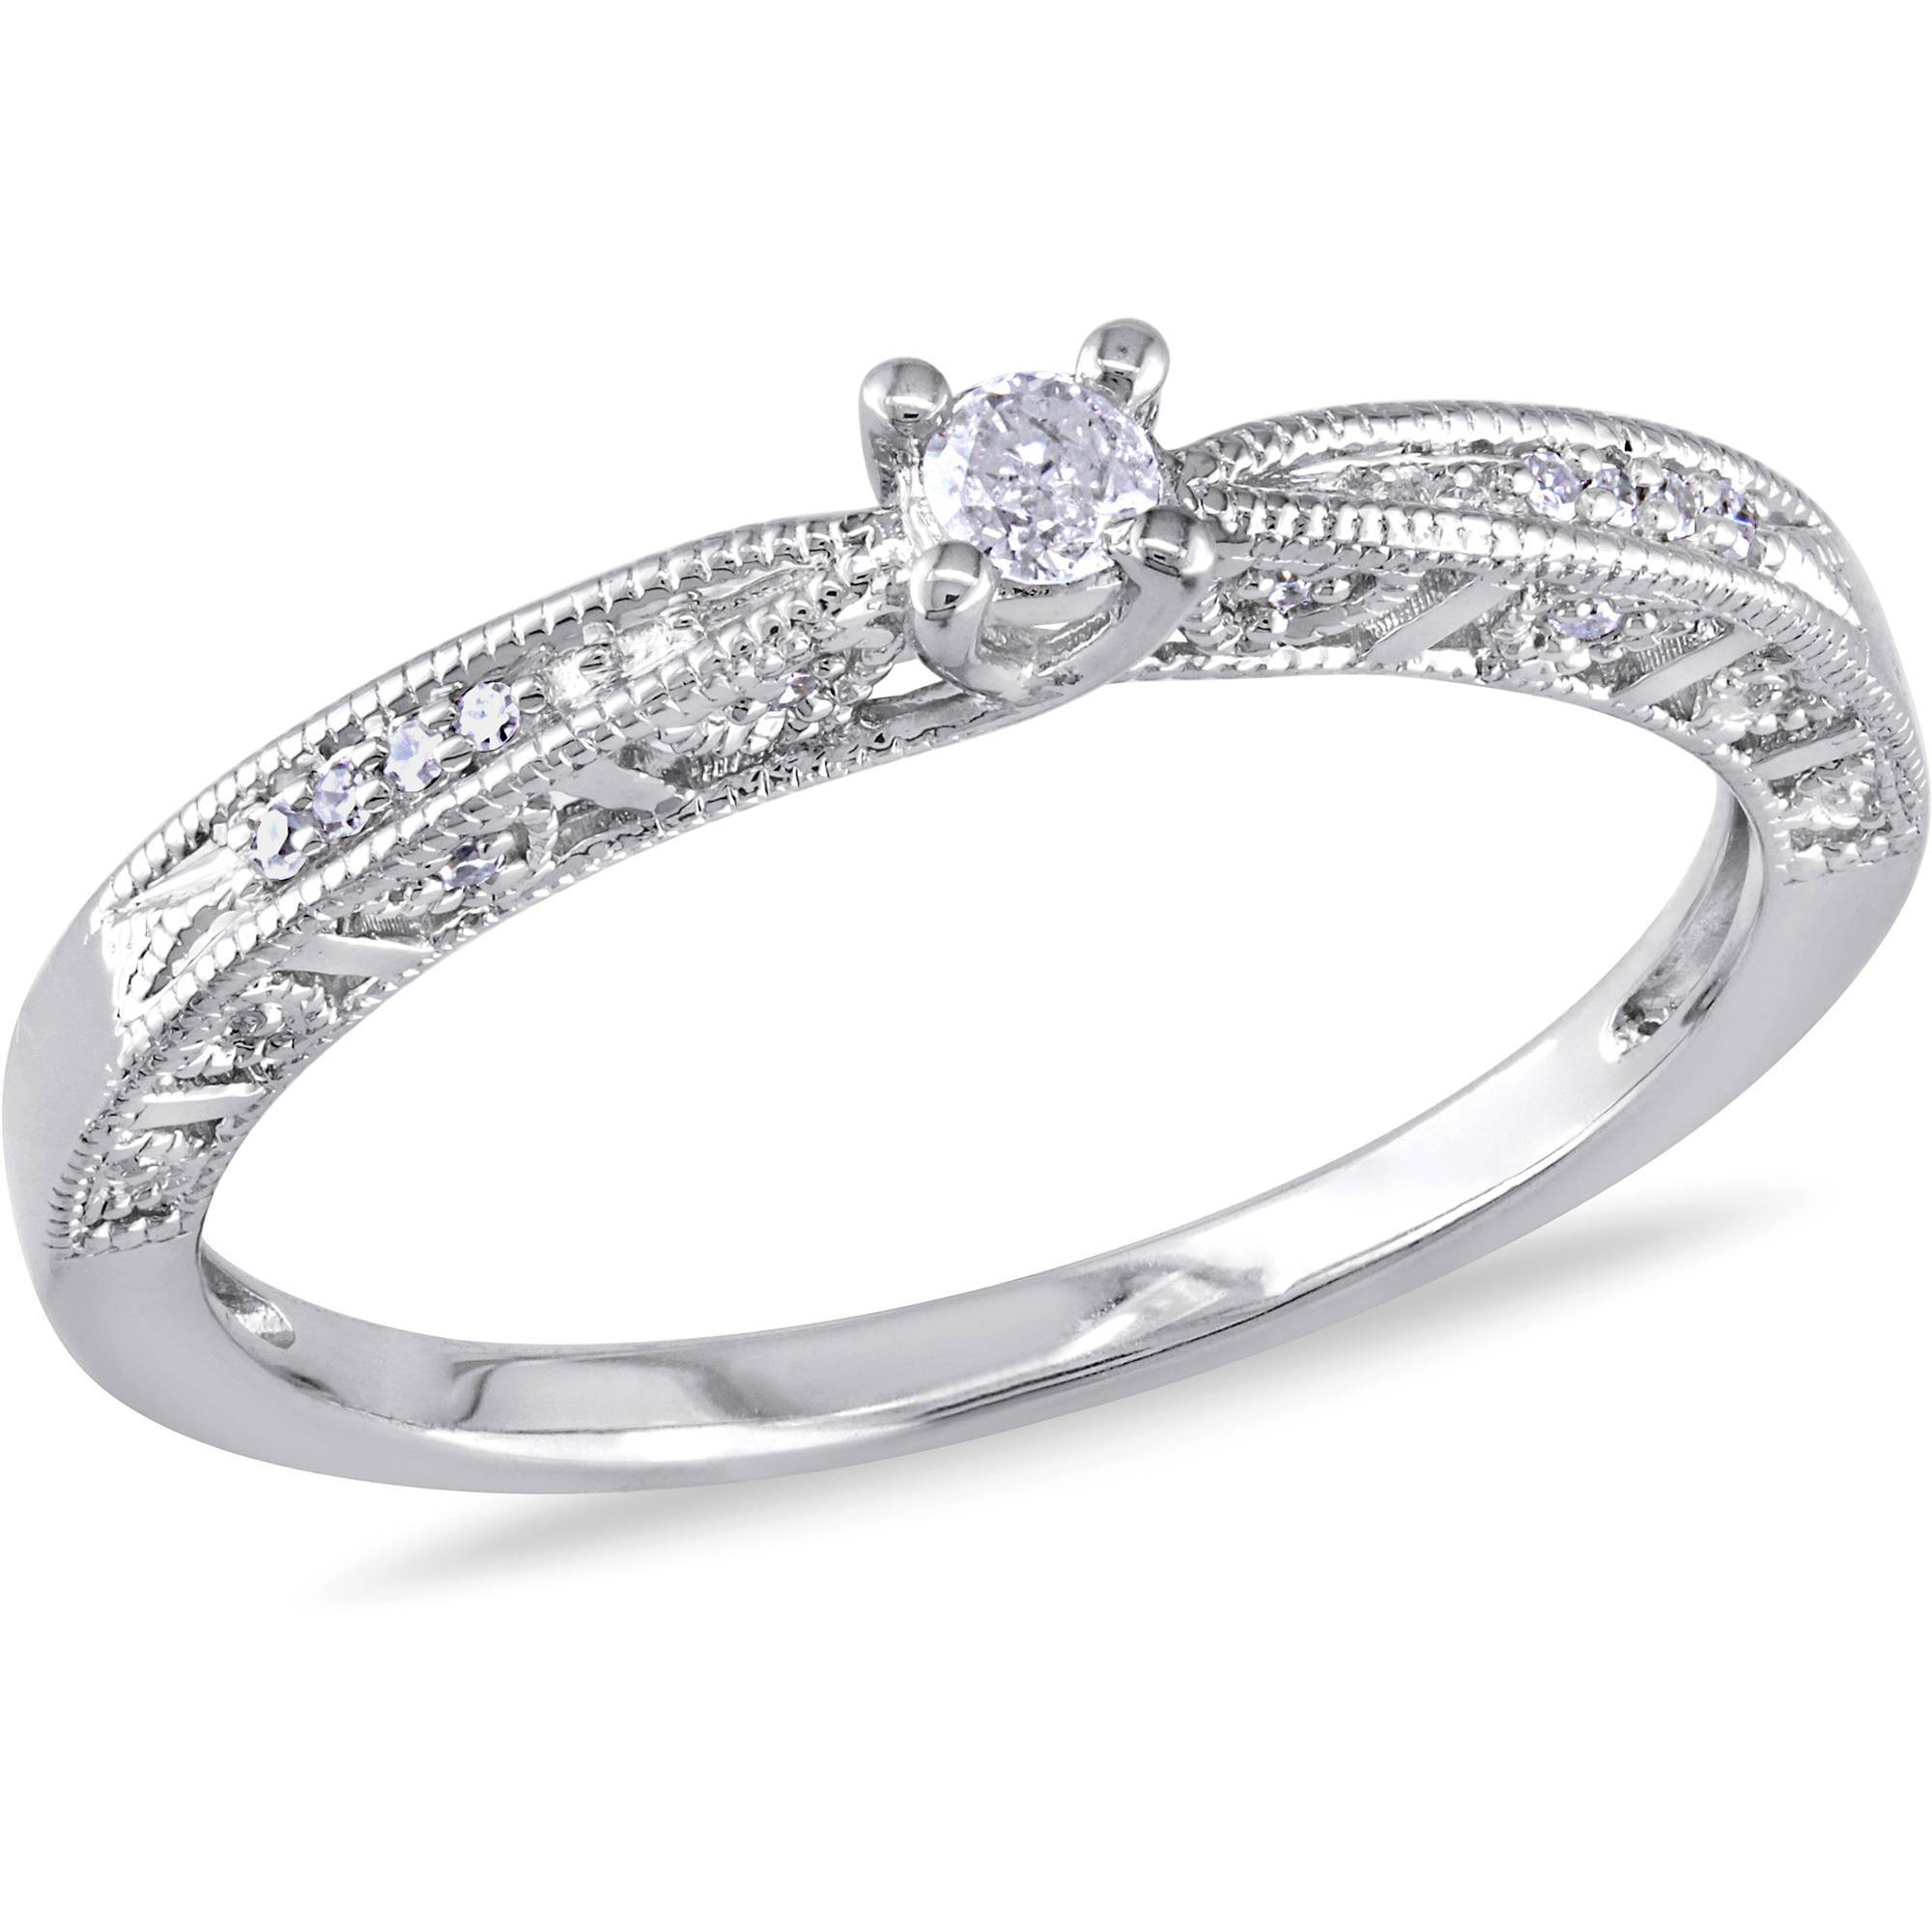 Walmart Wedding Rings | Wedding Ideas Pertaining To Walmart White Gold Wedding Bands (View 15 of 15)